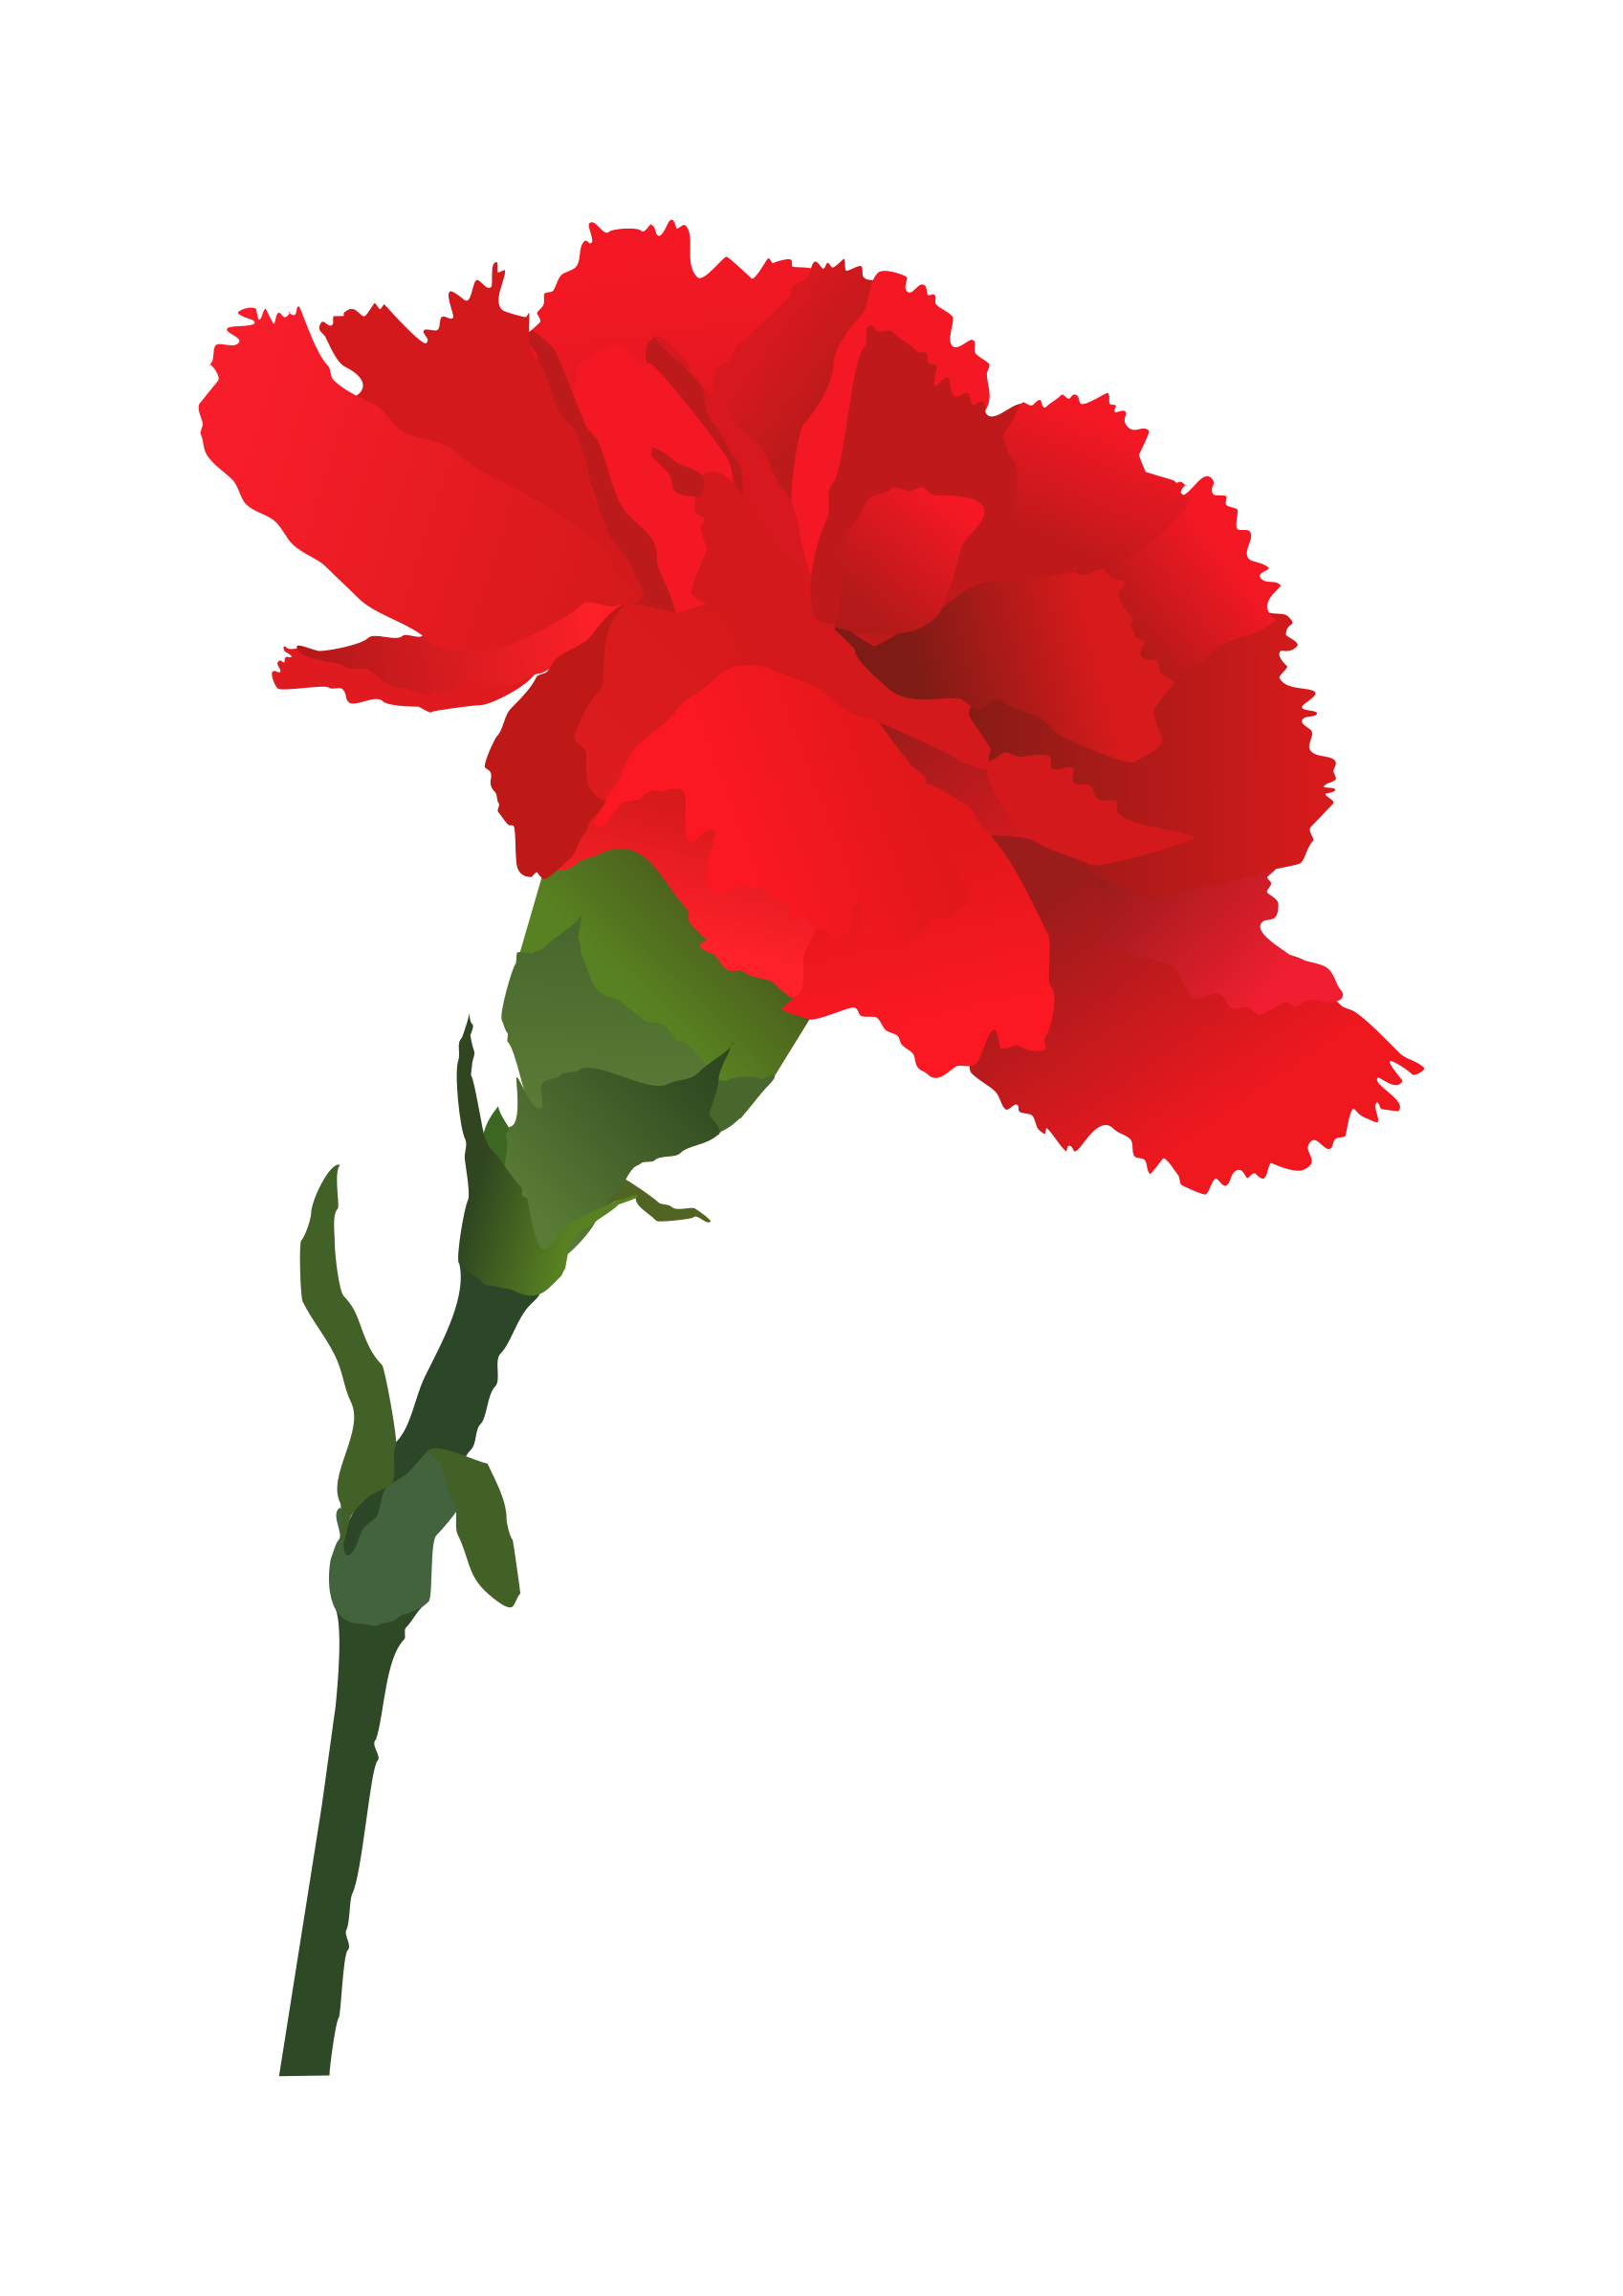 Red Carnation Displaying 20 Images For Red Carnation Drawing